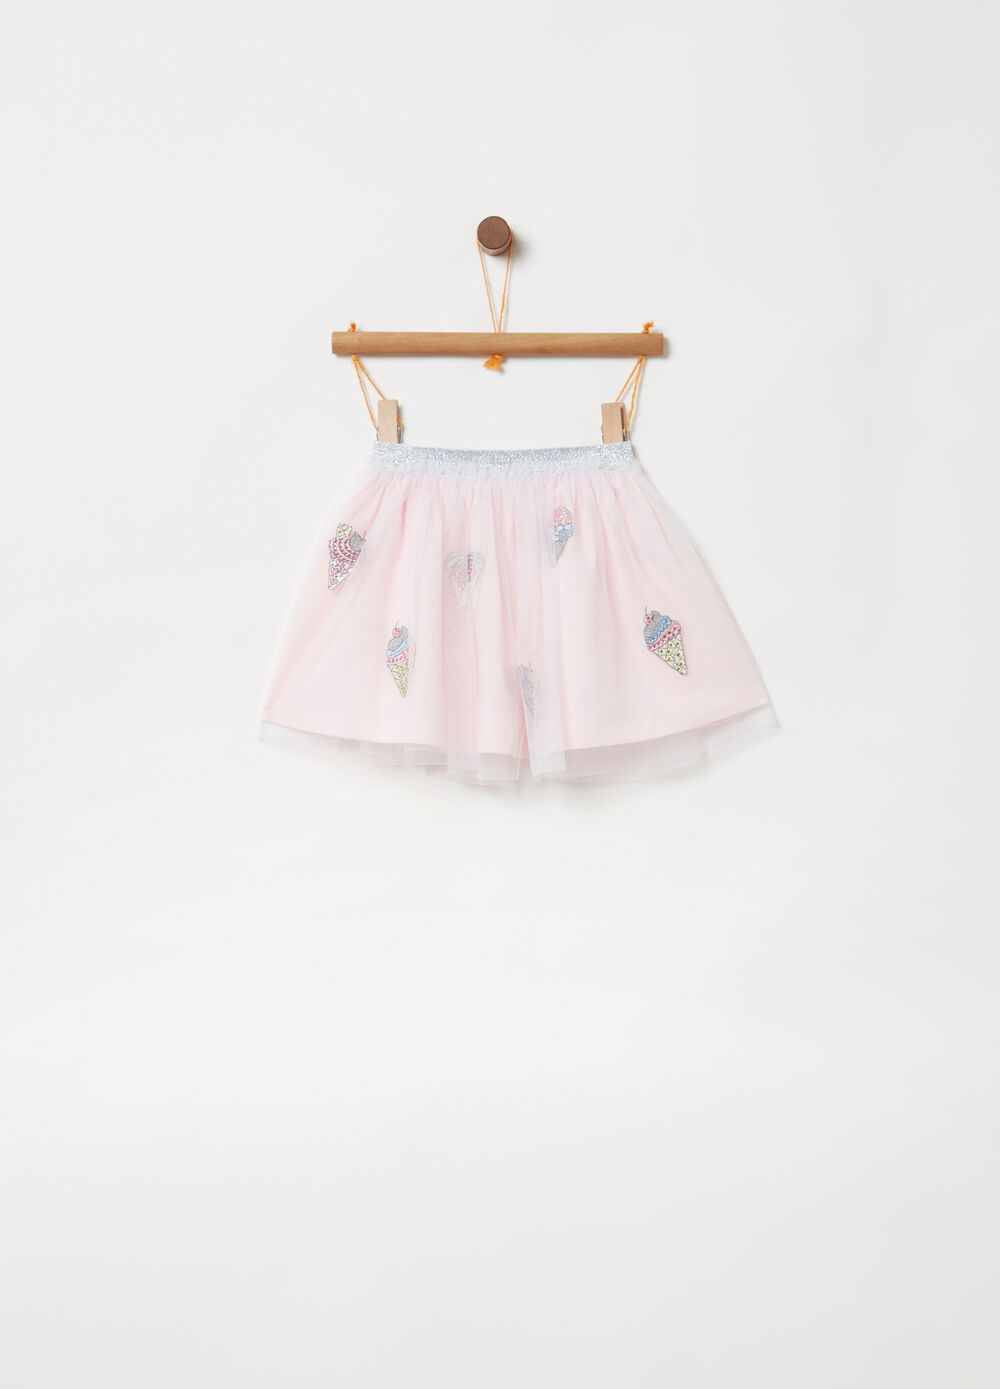 Skirt with tulle and glitter print with diamantés